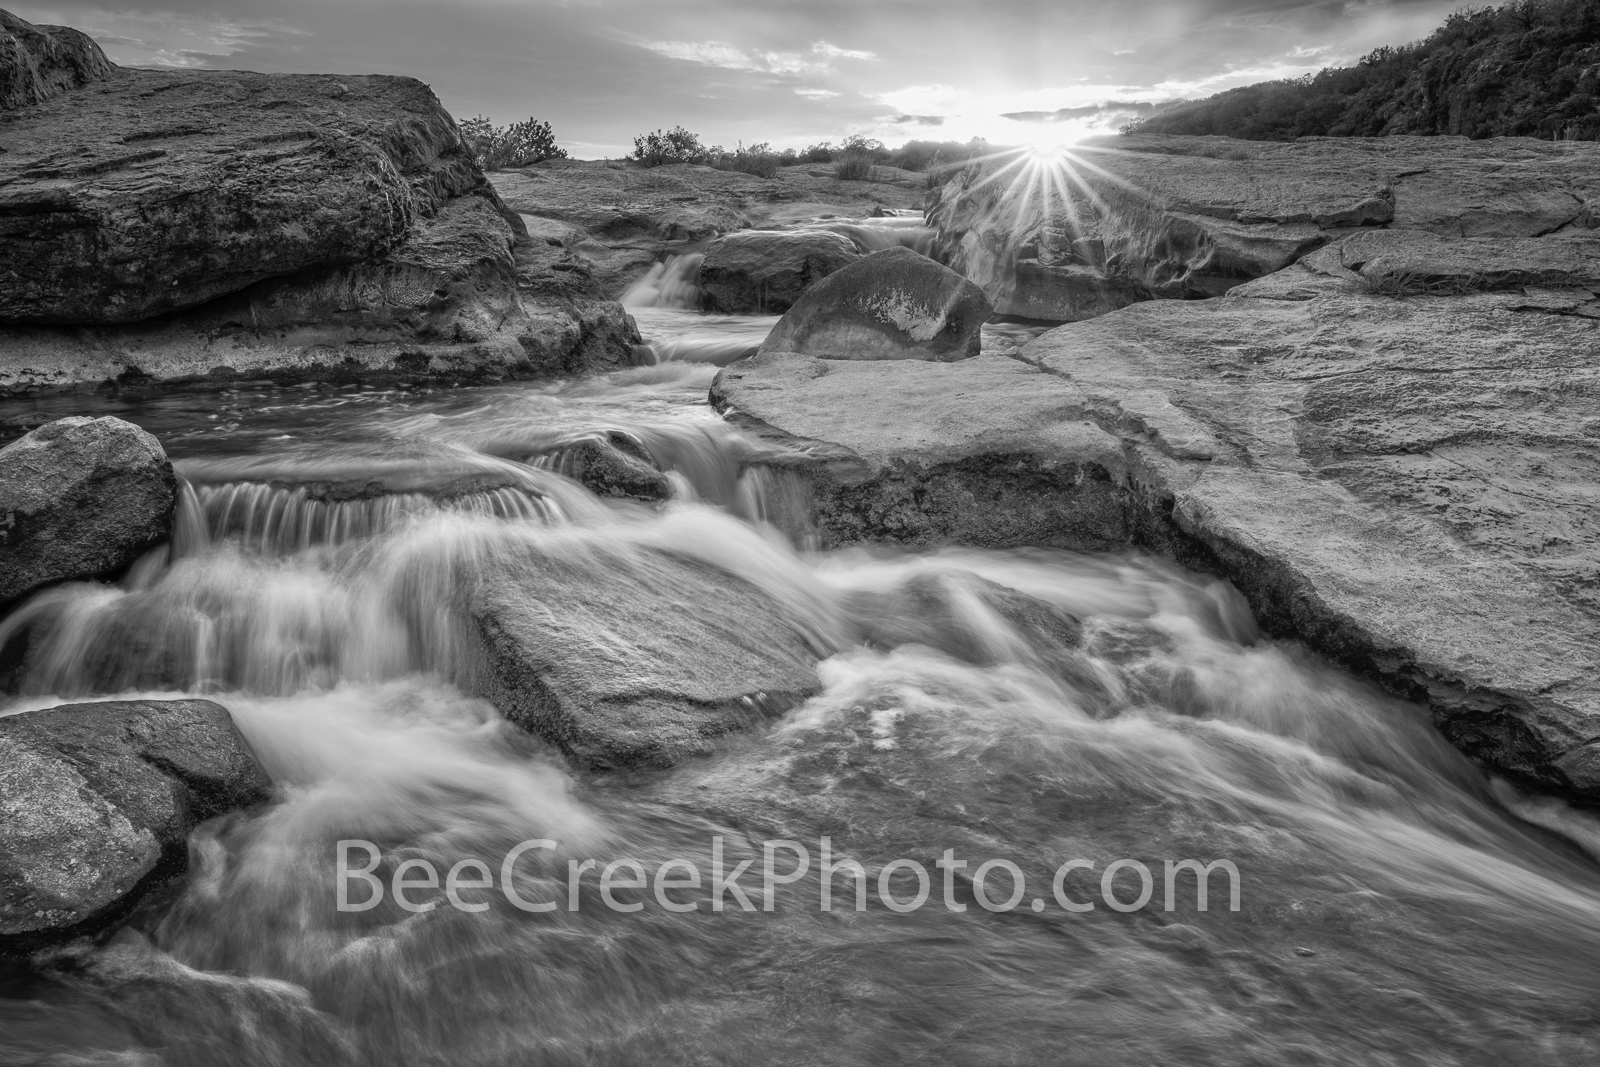 Texas Hill Country Waterfall at Sunset BW - Well this summer we have had some good rains and so after last week success at Pedernales...